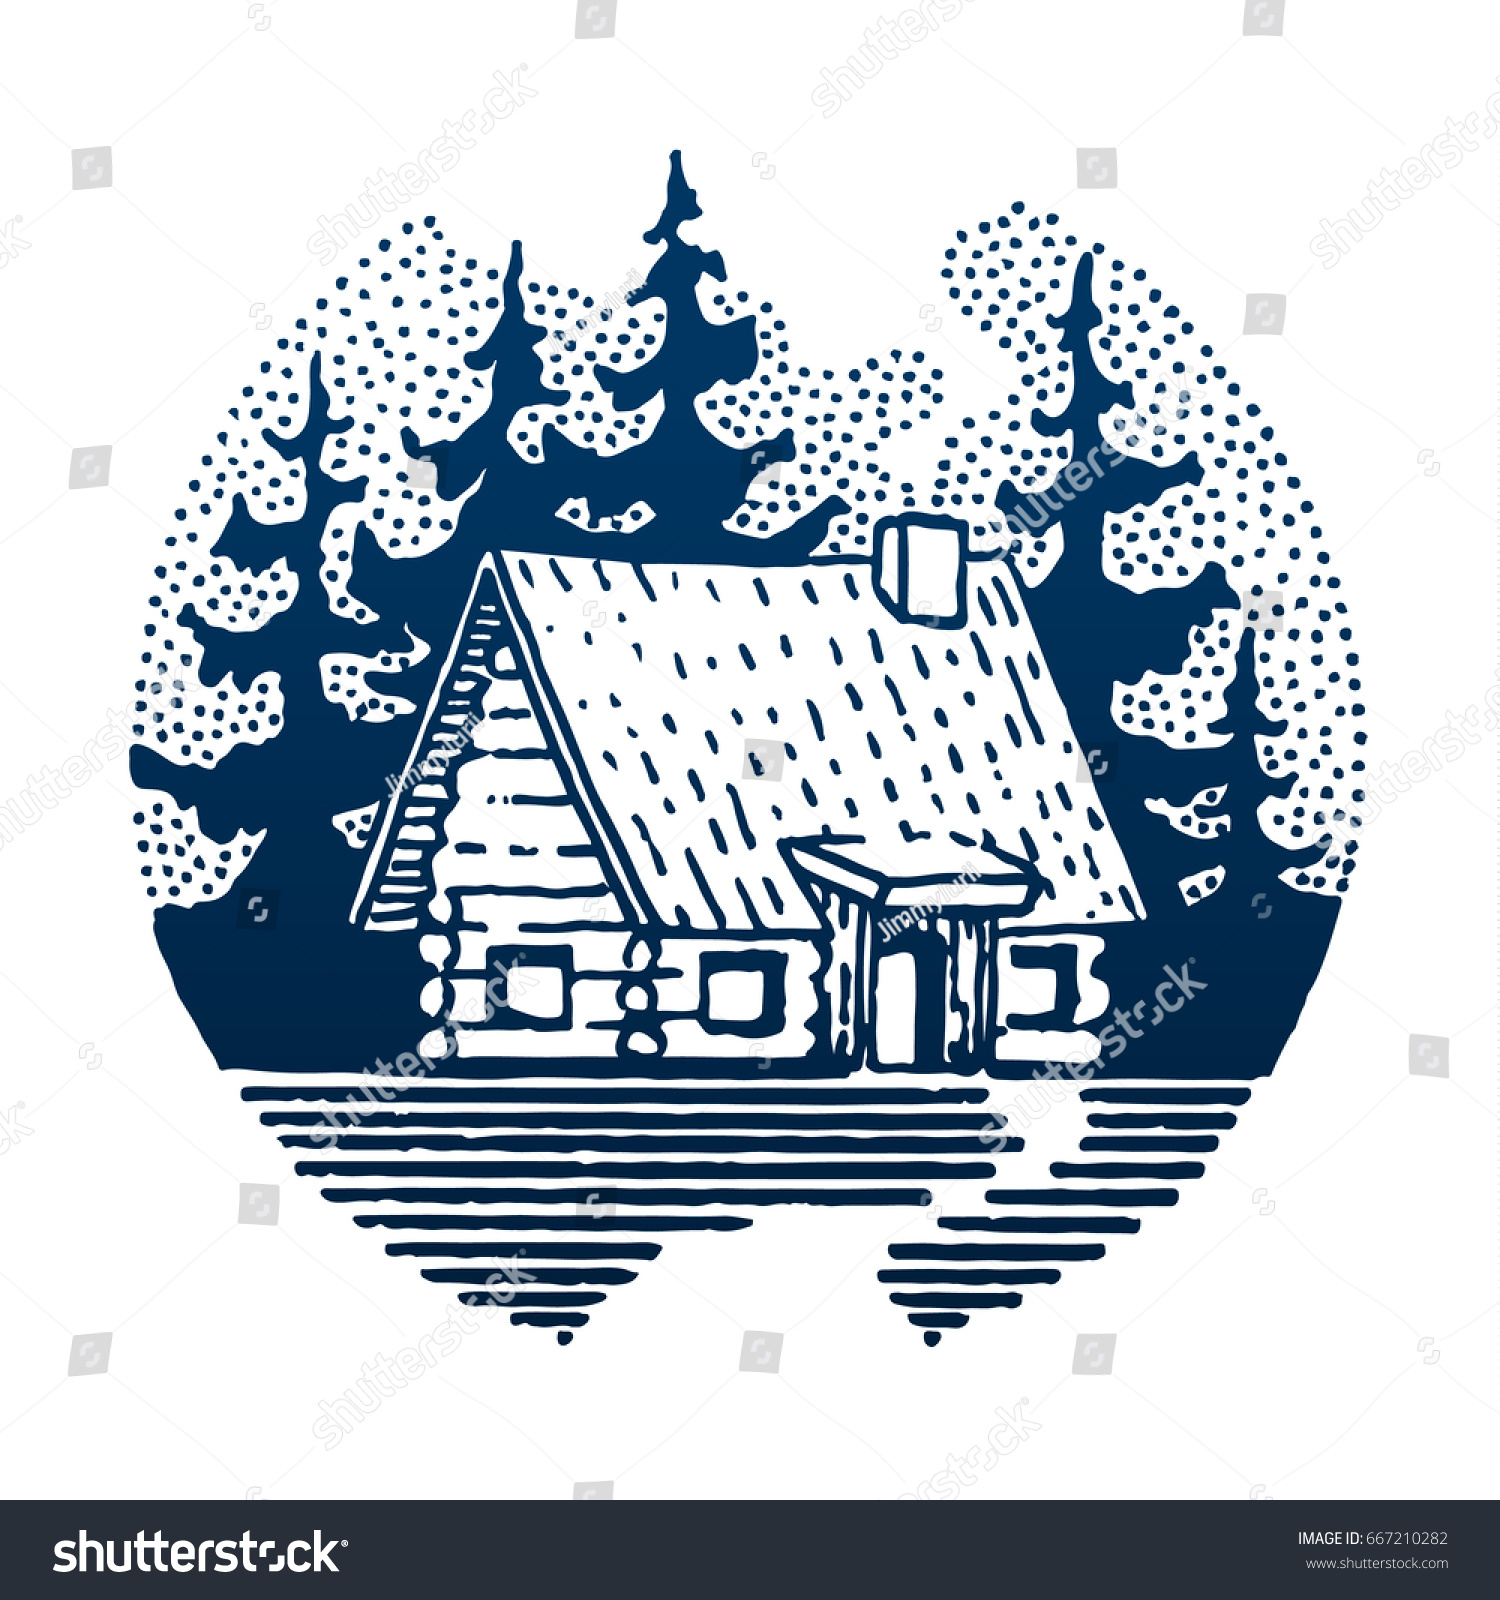 Wooden house forest round travel symbol stock vector 667210282 round travel symbol tourism hand drawn illustration in biocorpaavc Images